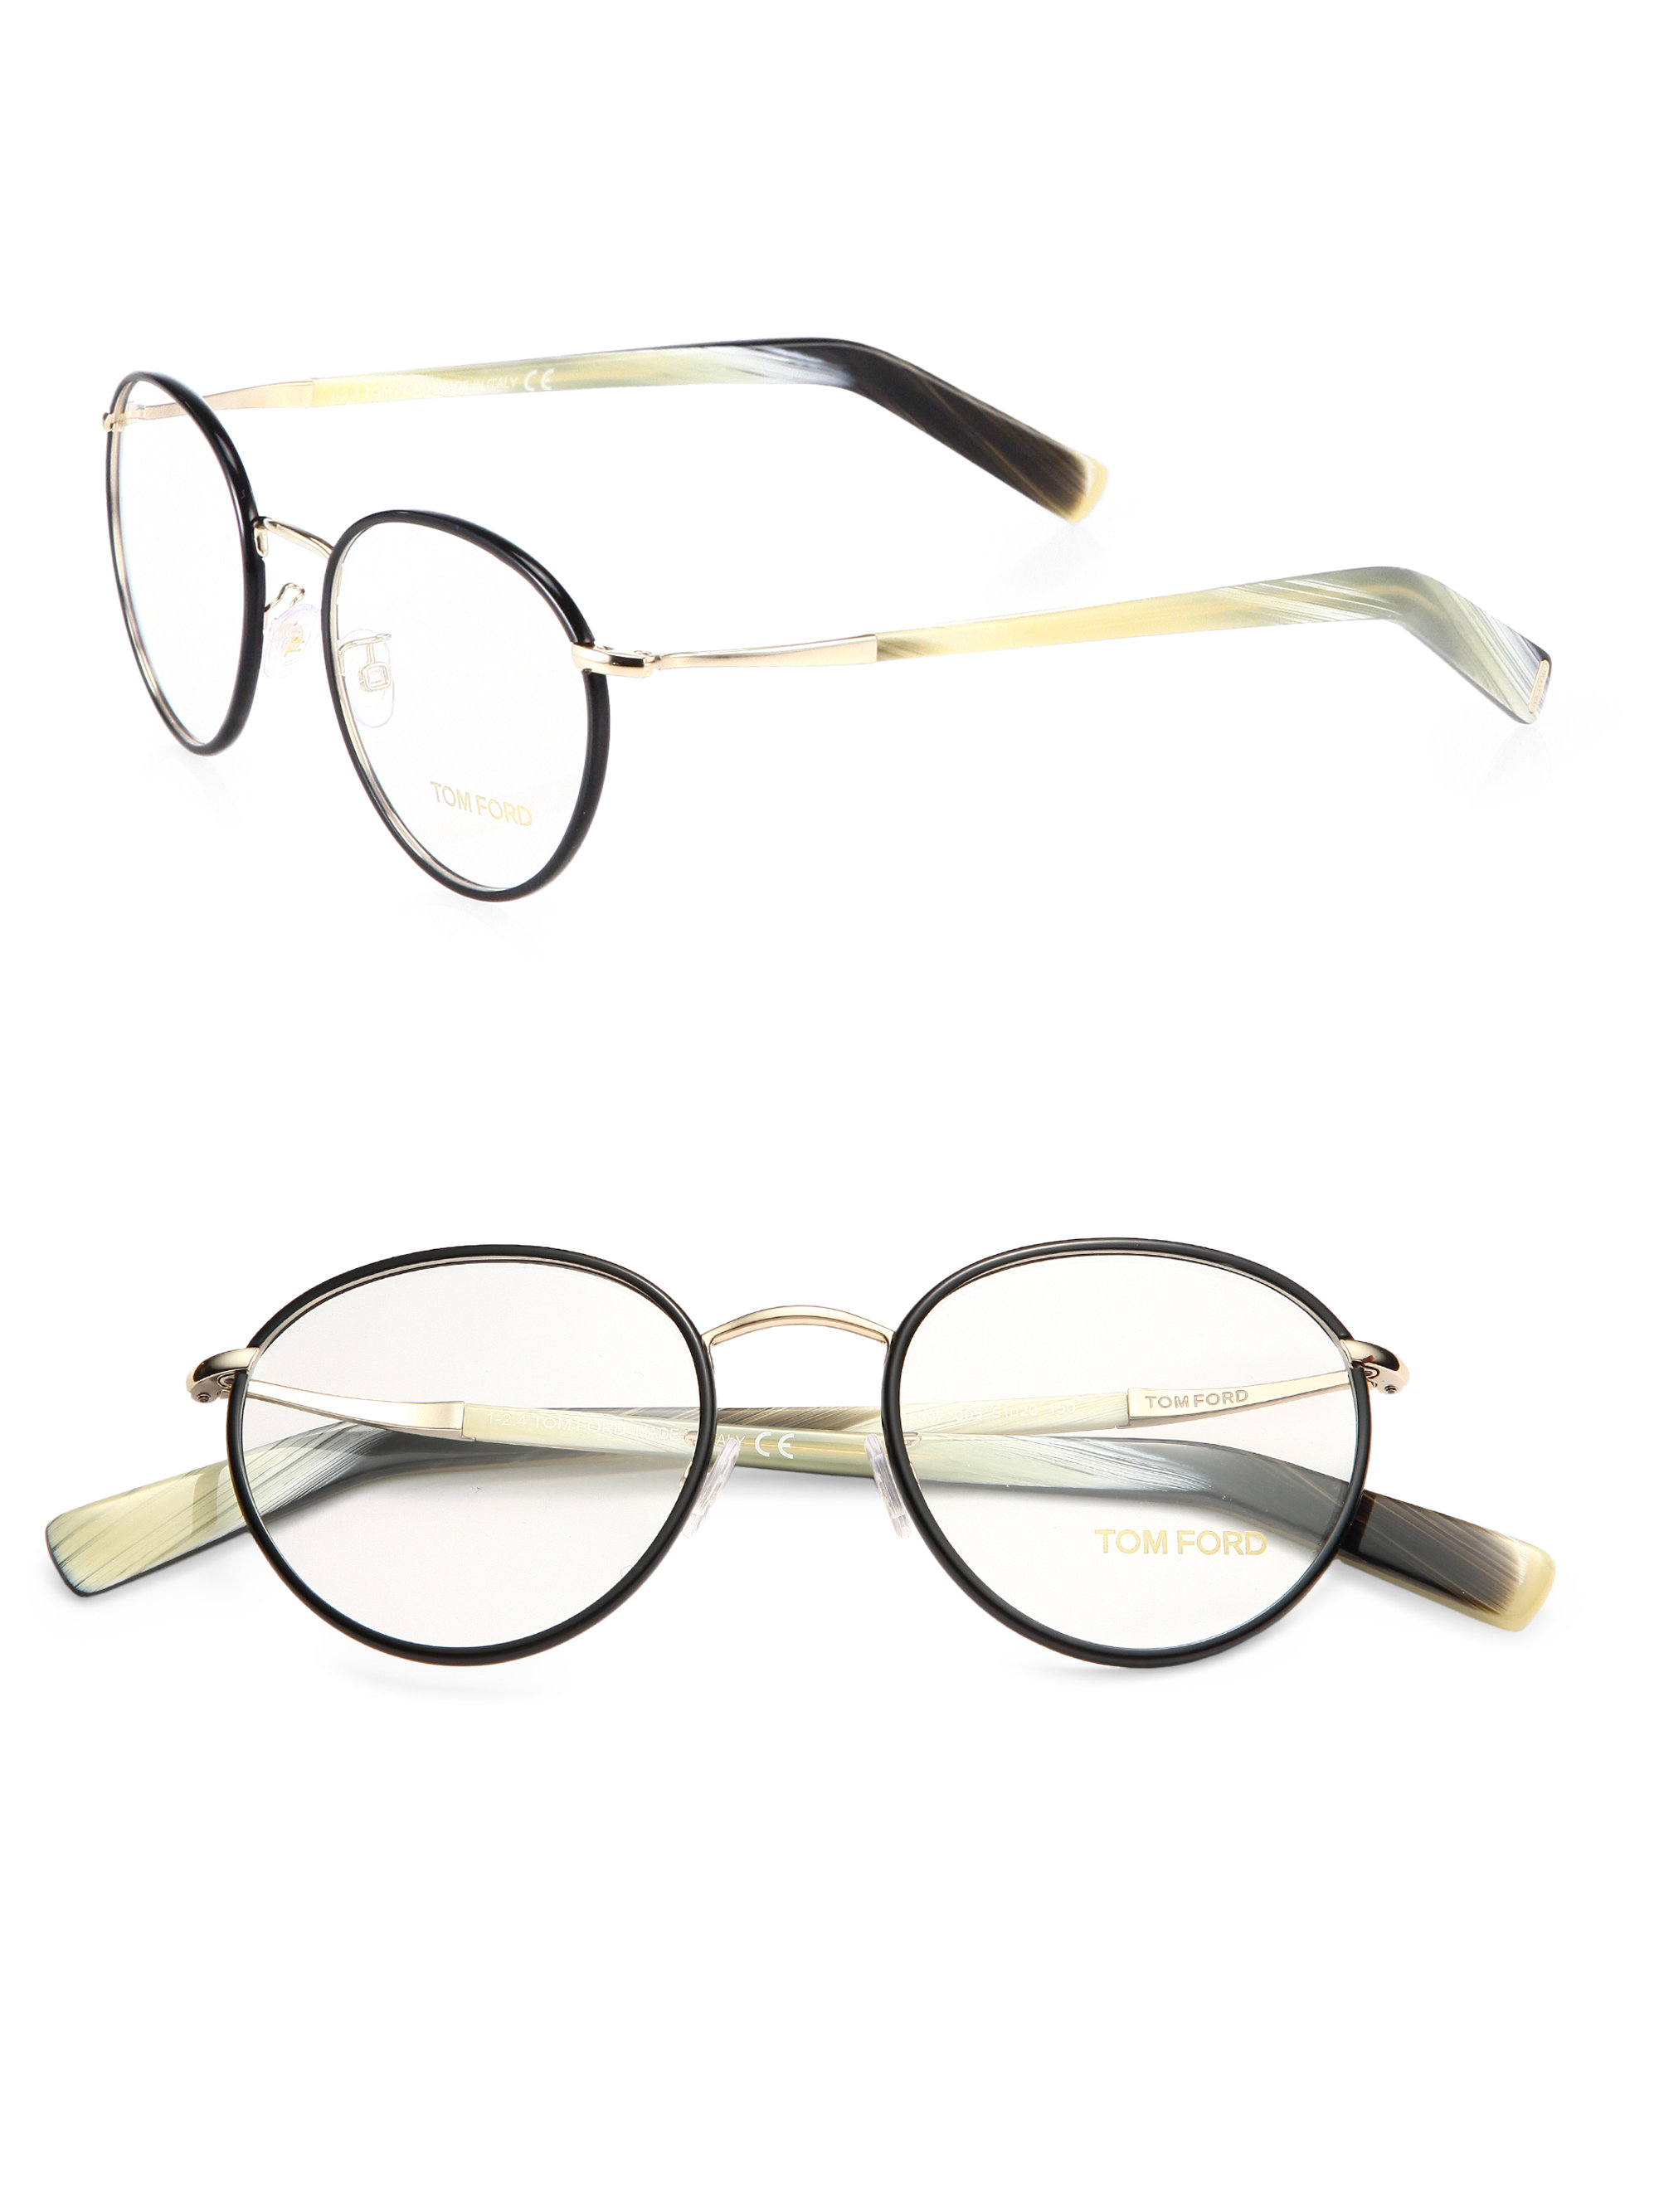 54361e25db4d Lyst - Tom Ford Round Optical Frames in Black for Men